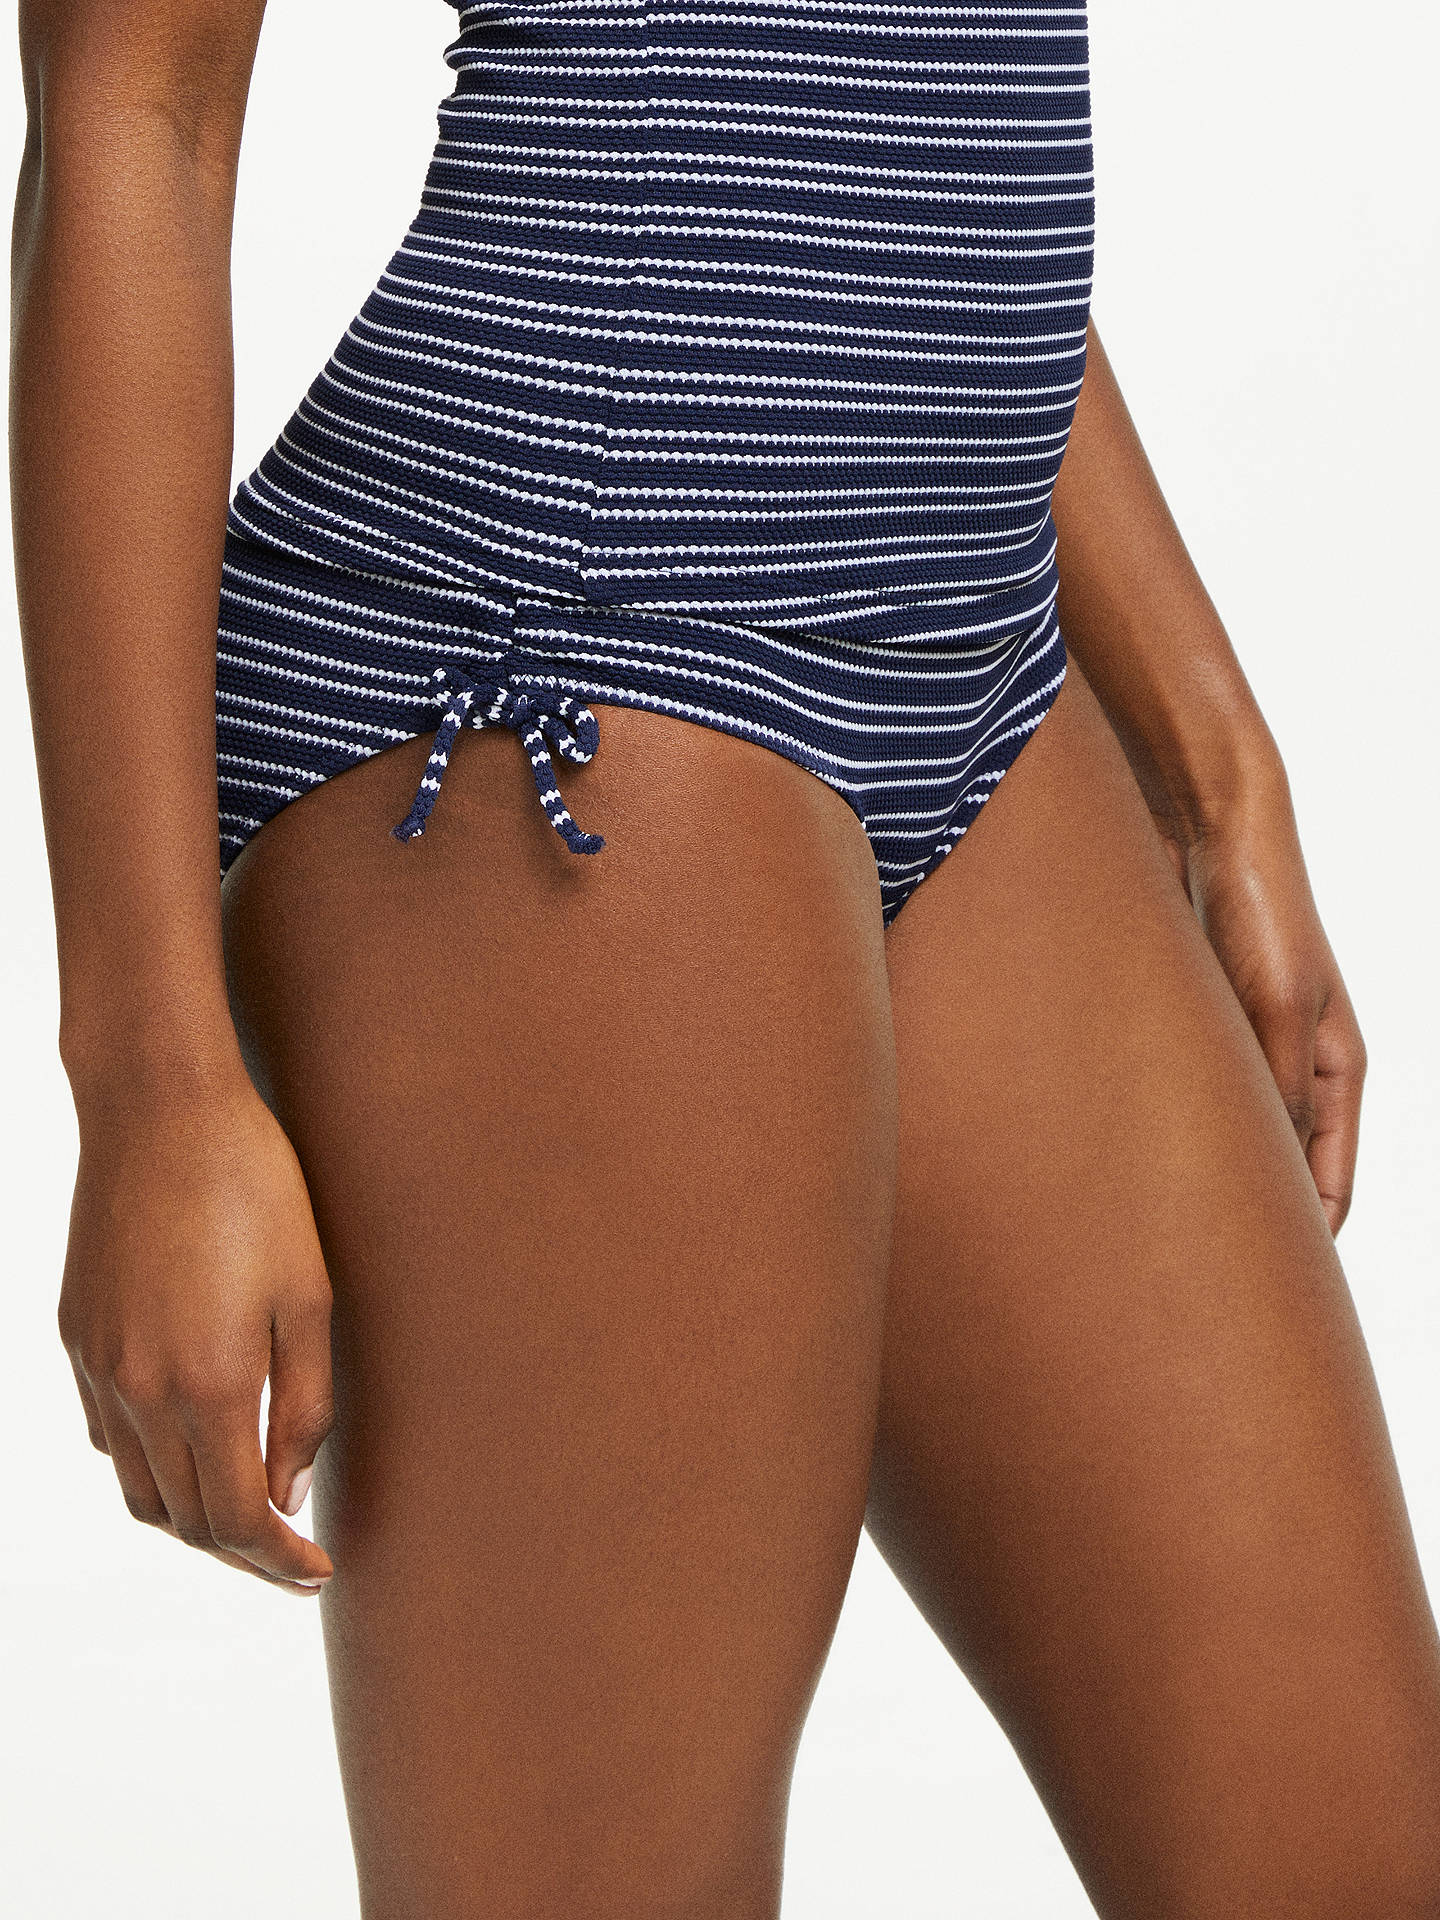 Buy John Lewis & Partners Textured Stripe Ruched Bikini Shorts, Navy/White, 16 Online at johnlewis.com